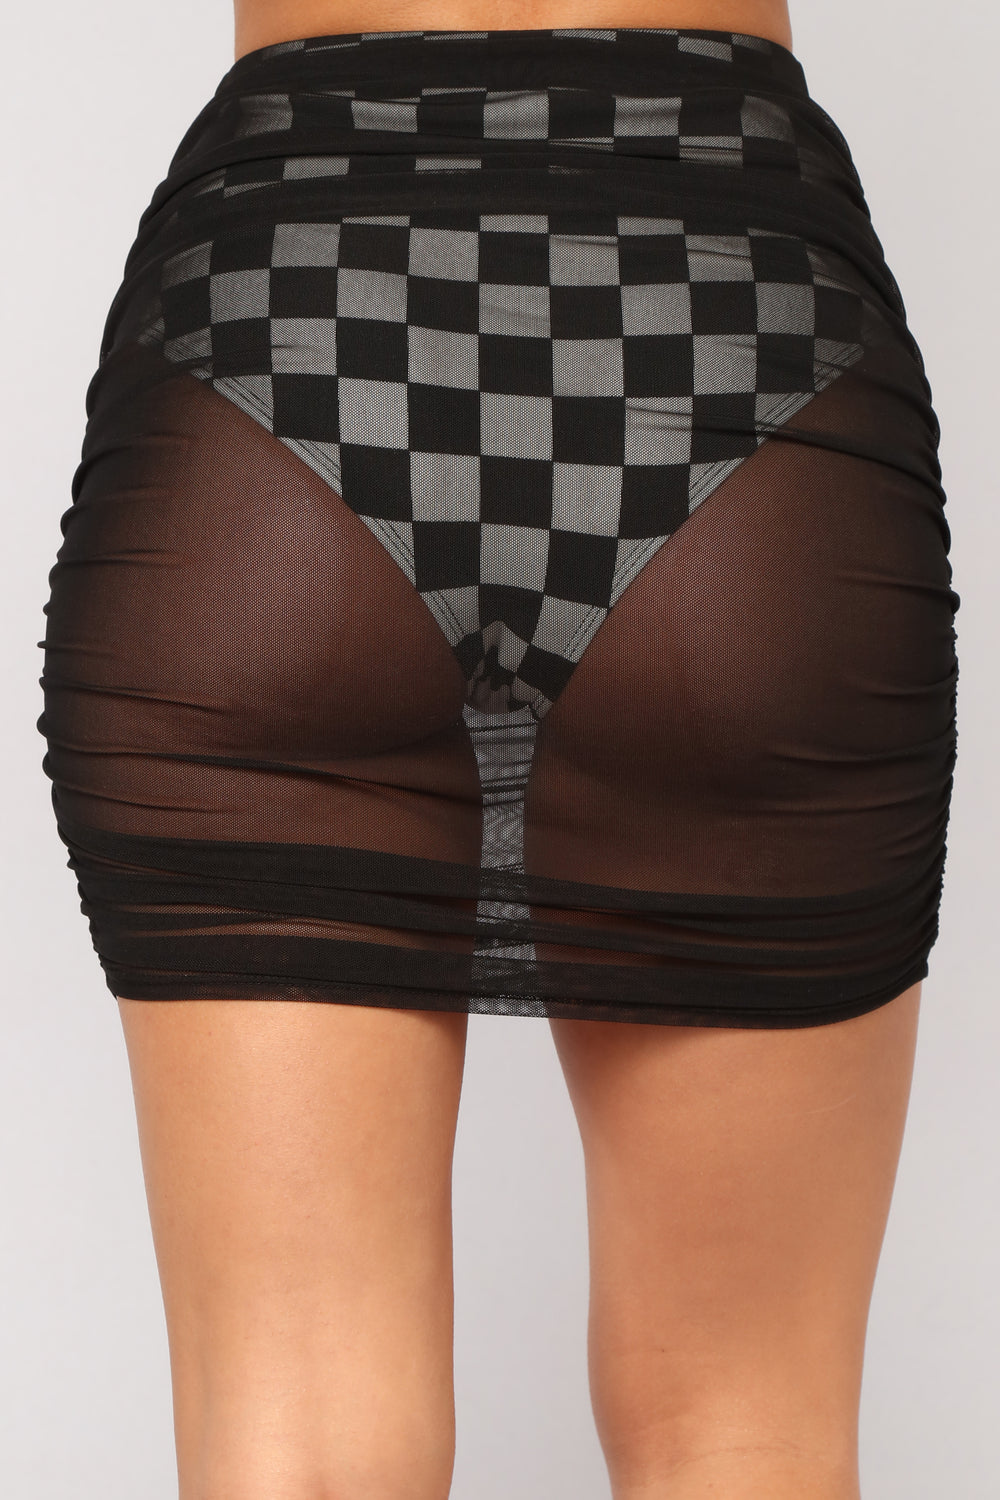 Win The Race Checkered Set - Black/White